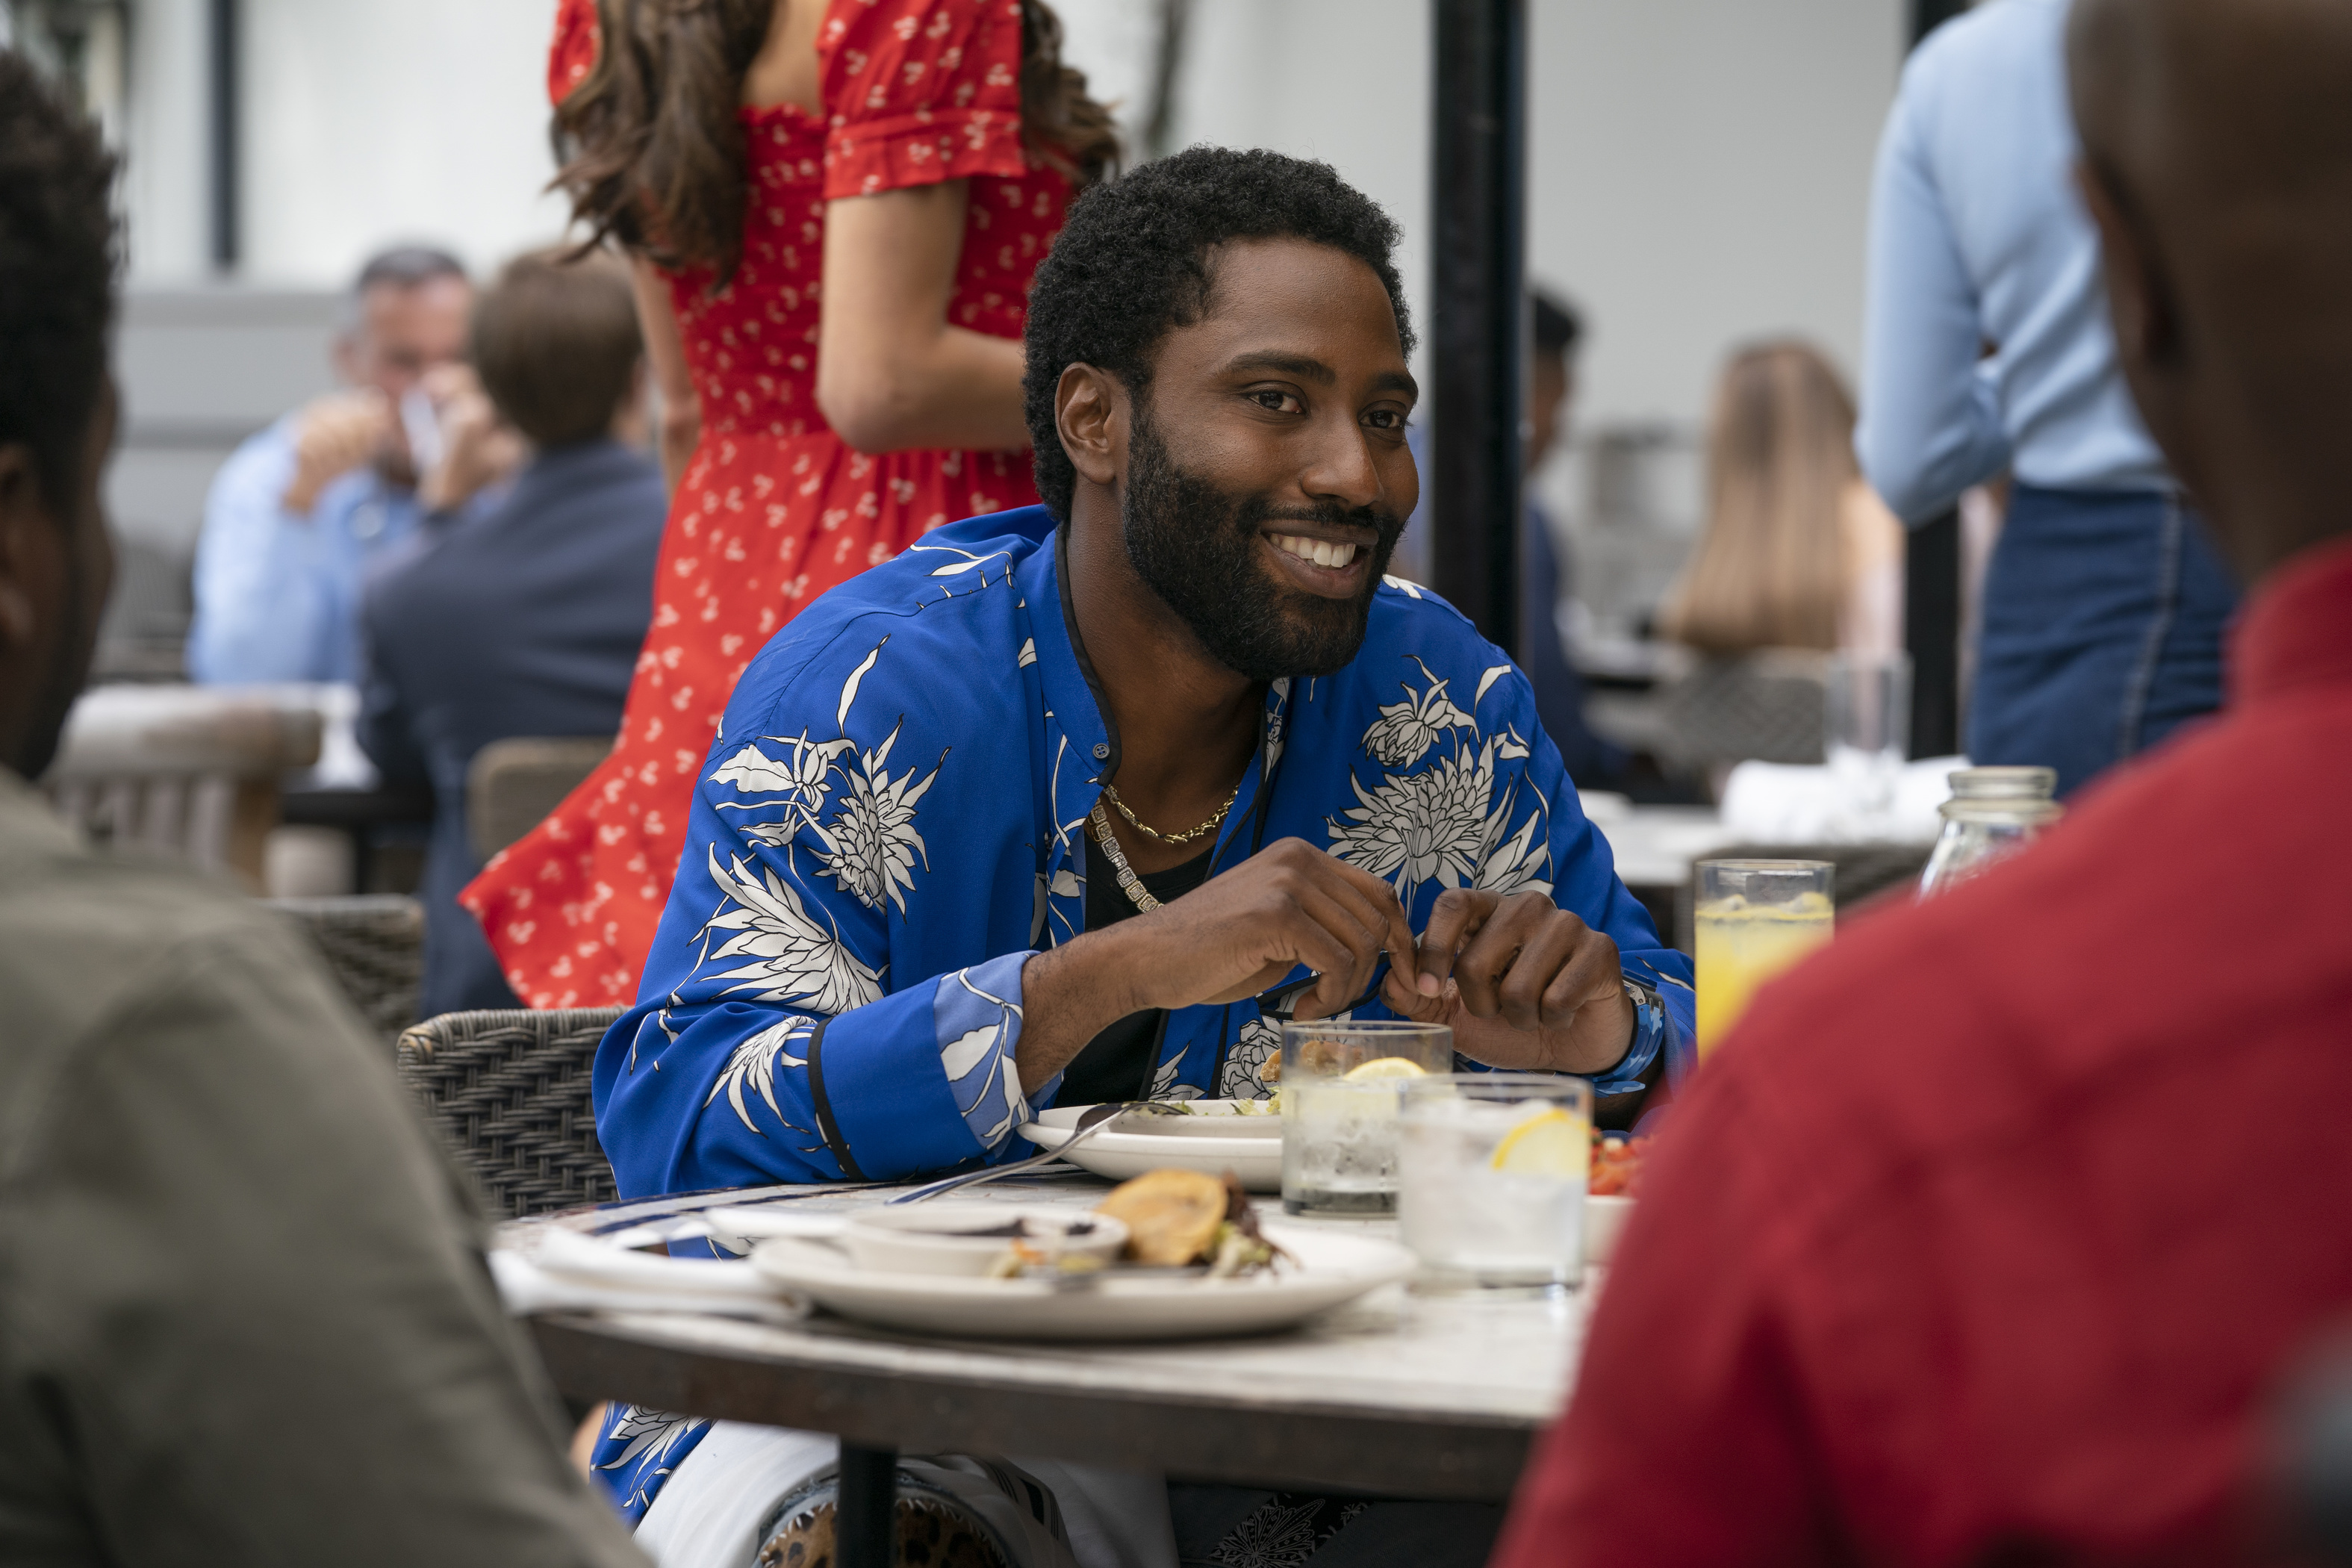 'Ballers' Season 5, Episode 4 synopsis/review: 'Best shot is to shoot straight'